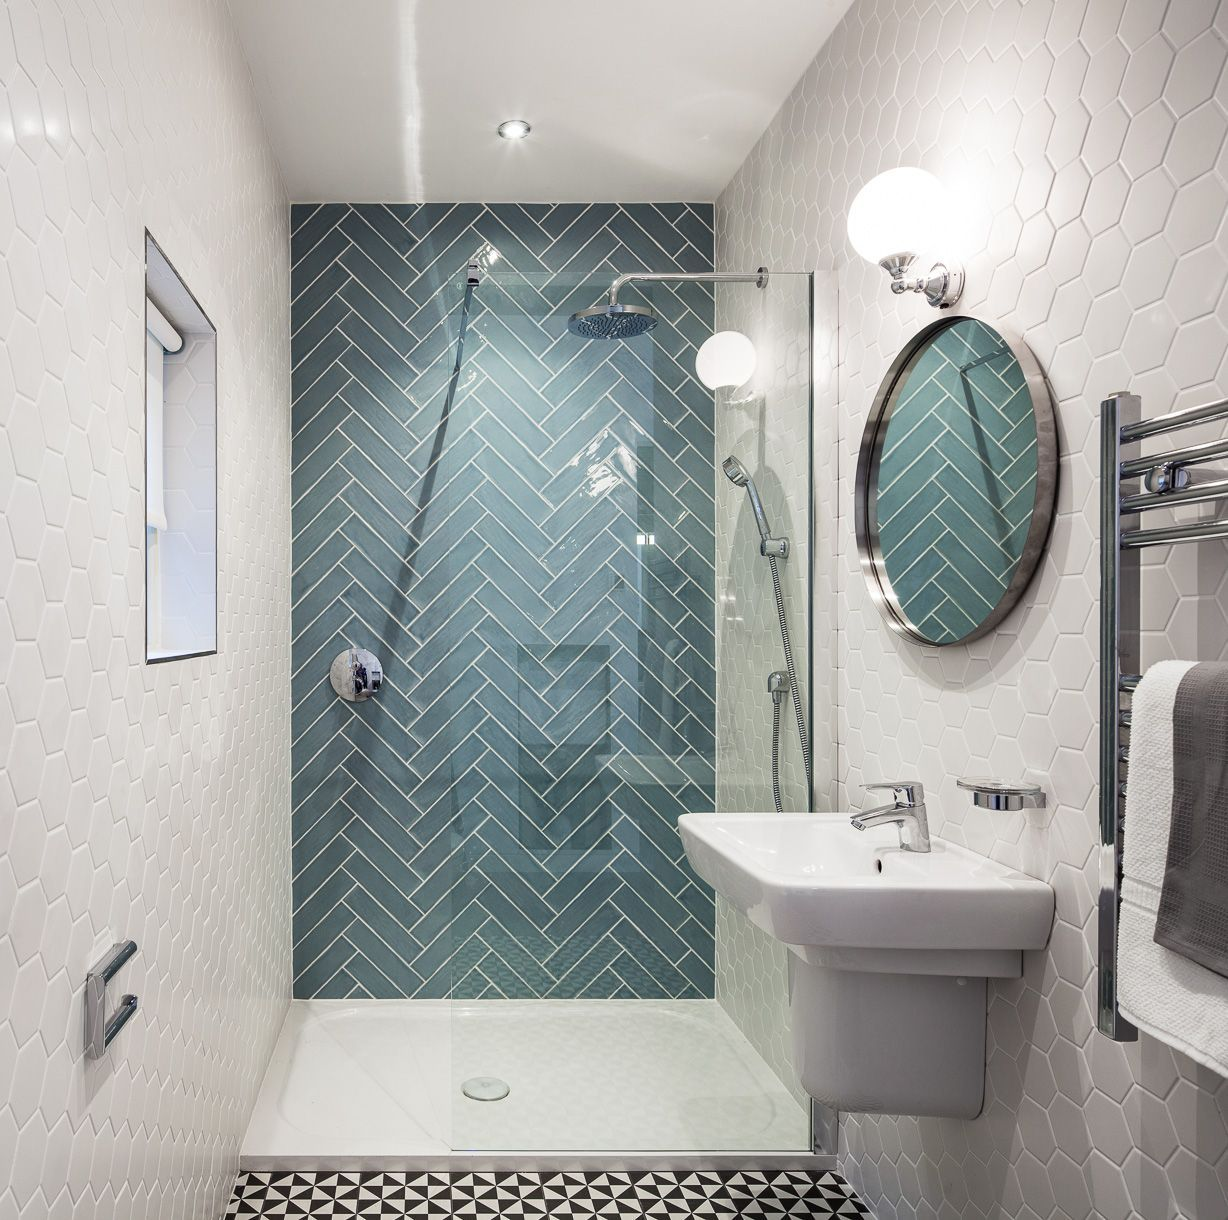 Bathroom Design Ideas to pamper up your house with a sophisticated ...